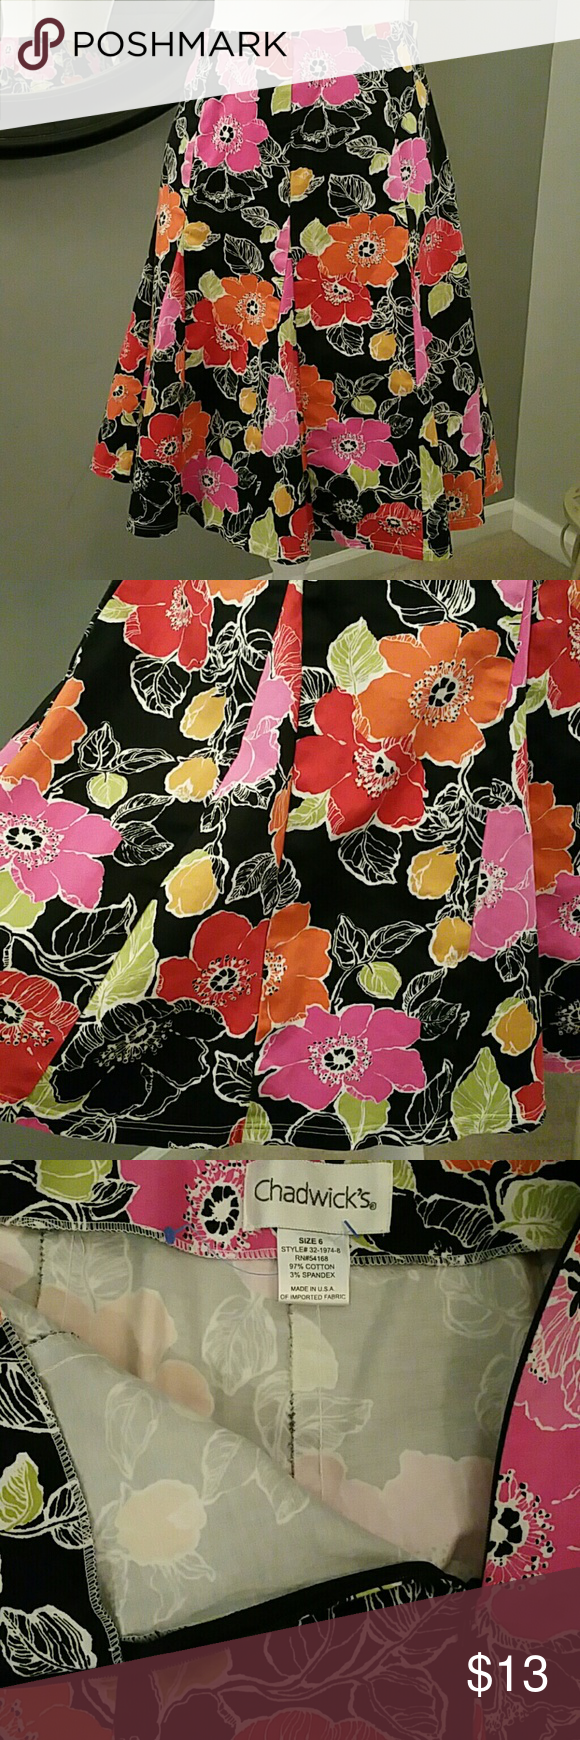 """CHADWICKS Floral Flared Skirt! Floral multi-gored flared skirt by CHADWICKS! Colors: black/orange/fuschia/green/mustard/white Side zipper.  Cotton fabric (medium-weight) Length of skirt: 22""""  Waist measures 13"""" side-to-side  Size 6, but fits more like a 4.  Excellent condition!! No flaws!! Chadwicks Skirts Midi"""